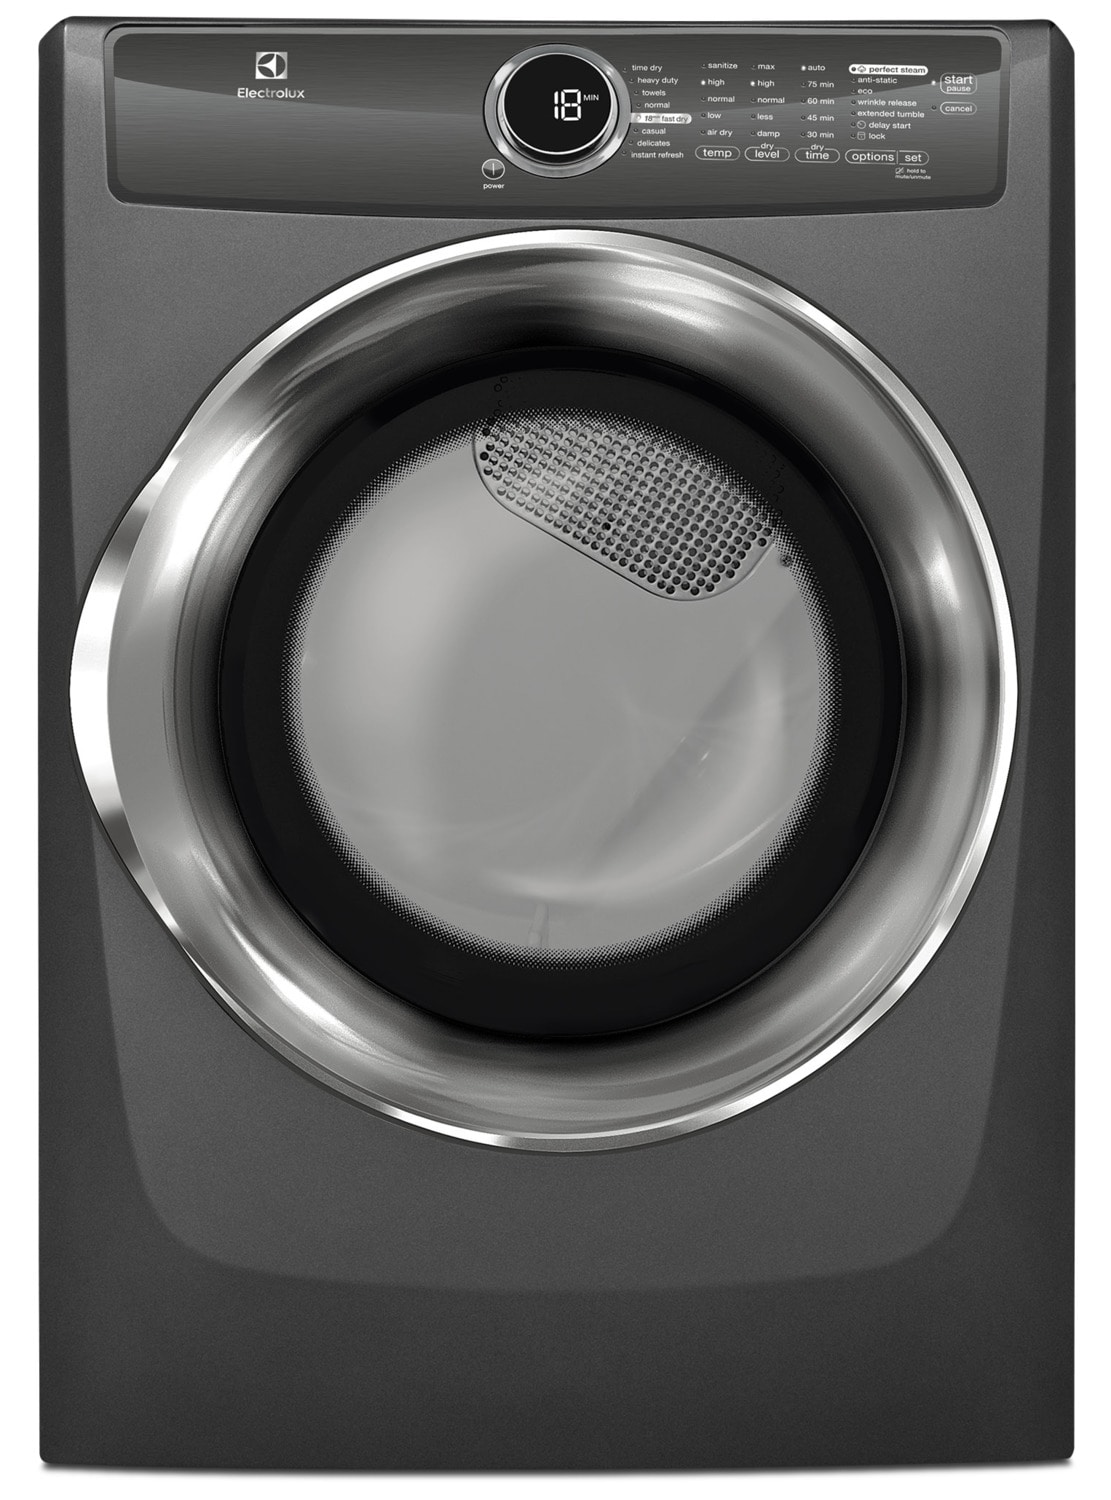 Washers and Dryers - Electrolux Titanium Electric Dryer (8.0 Cu. Ft) - EFMC517STT